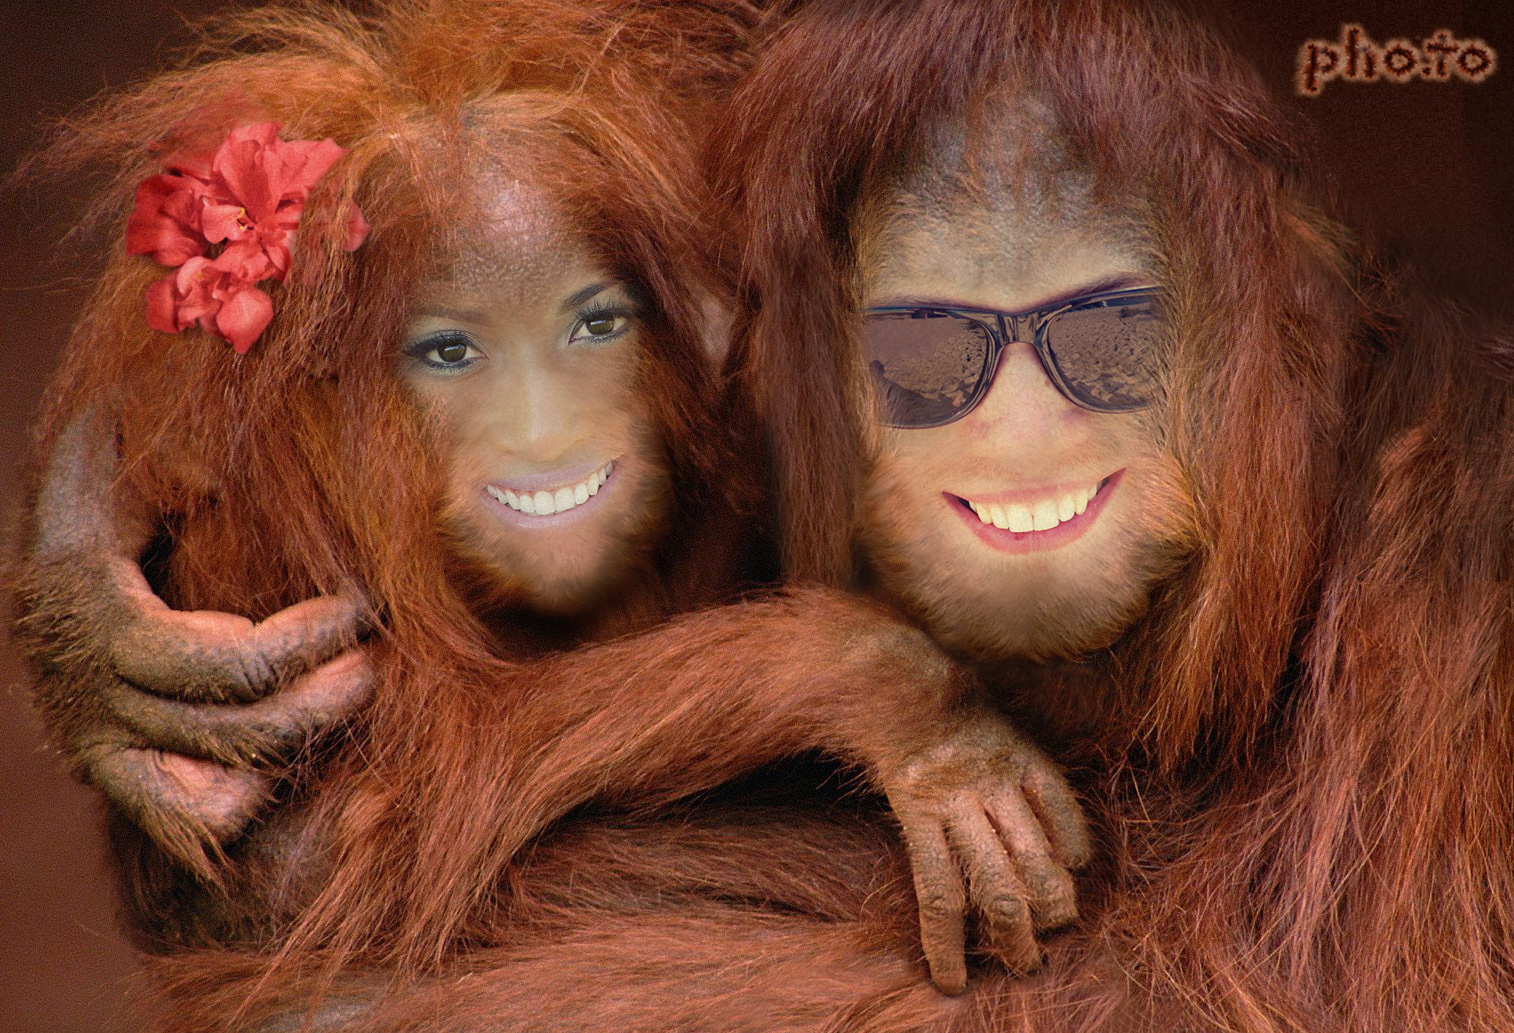 Face in hole photo effect with happy couple turned into a a couple of red apes